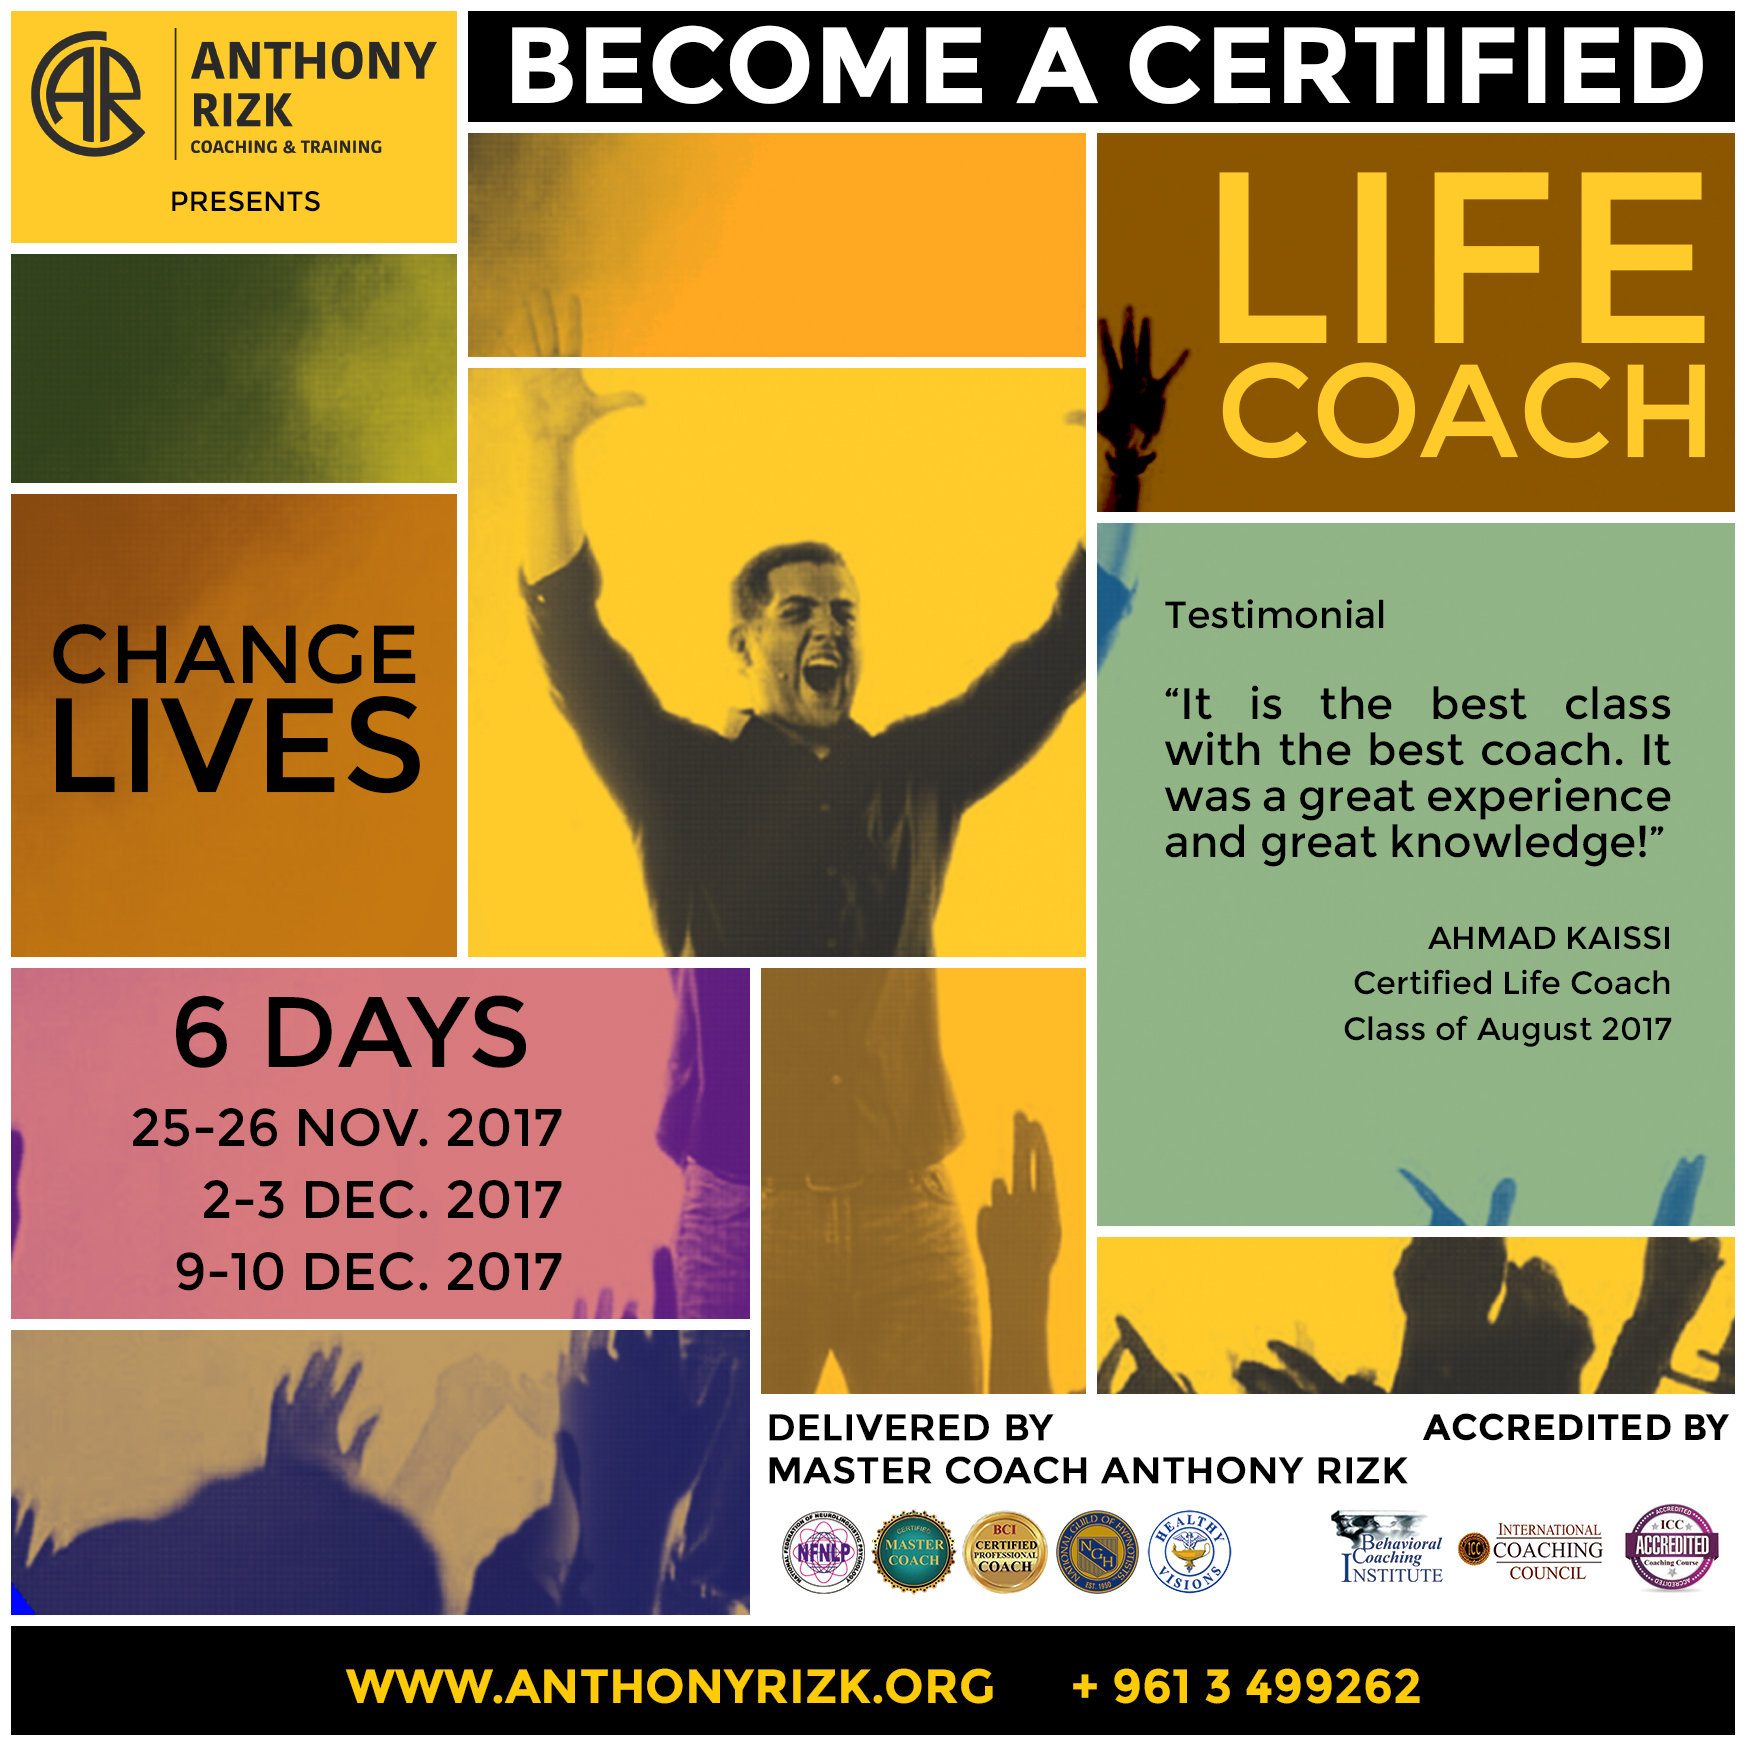 Best of photos of life coach certification online business cards news archives anthony rizk peak performance strategist and news archives anthony rizk peak performance strategist and from life coach certification online 1betcityfo Images